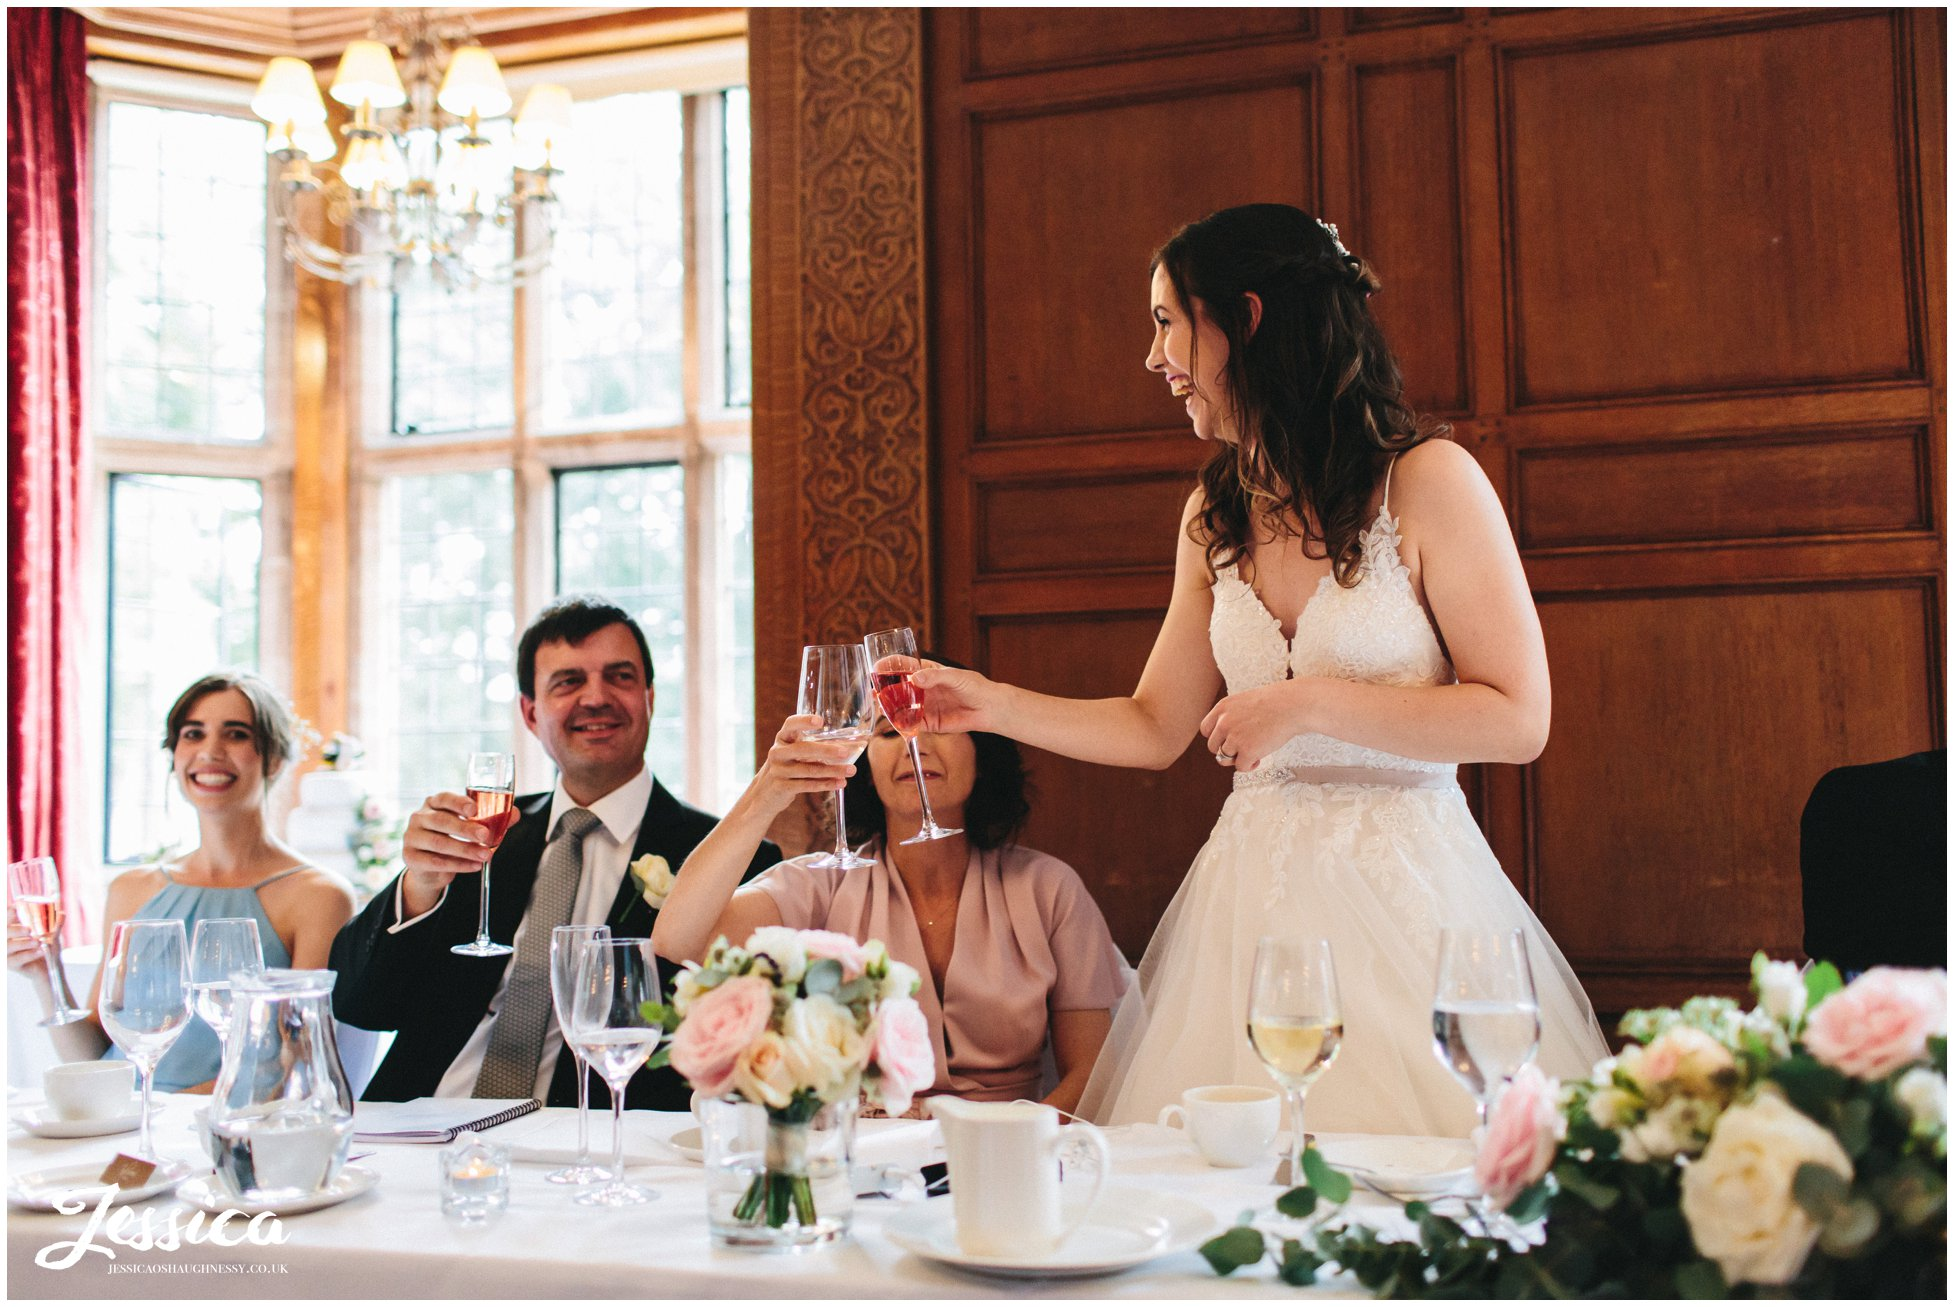 the bride cheers with her family to toast the speakers